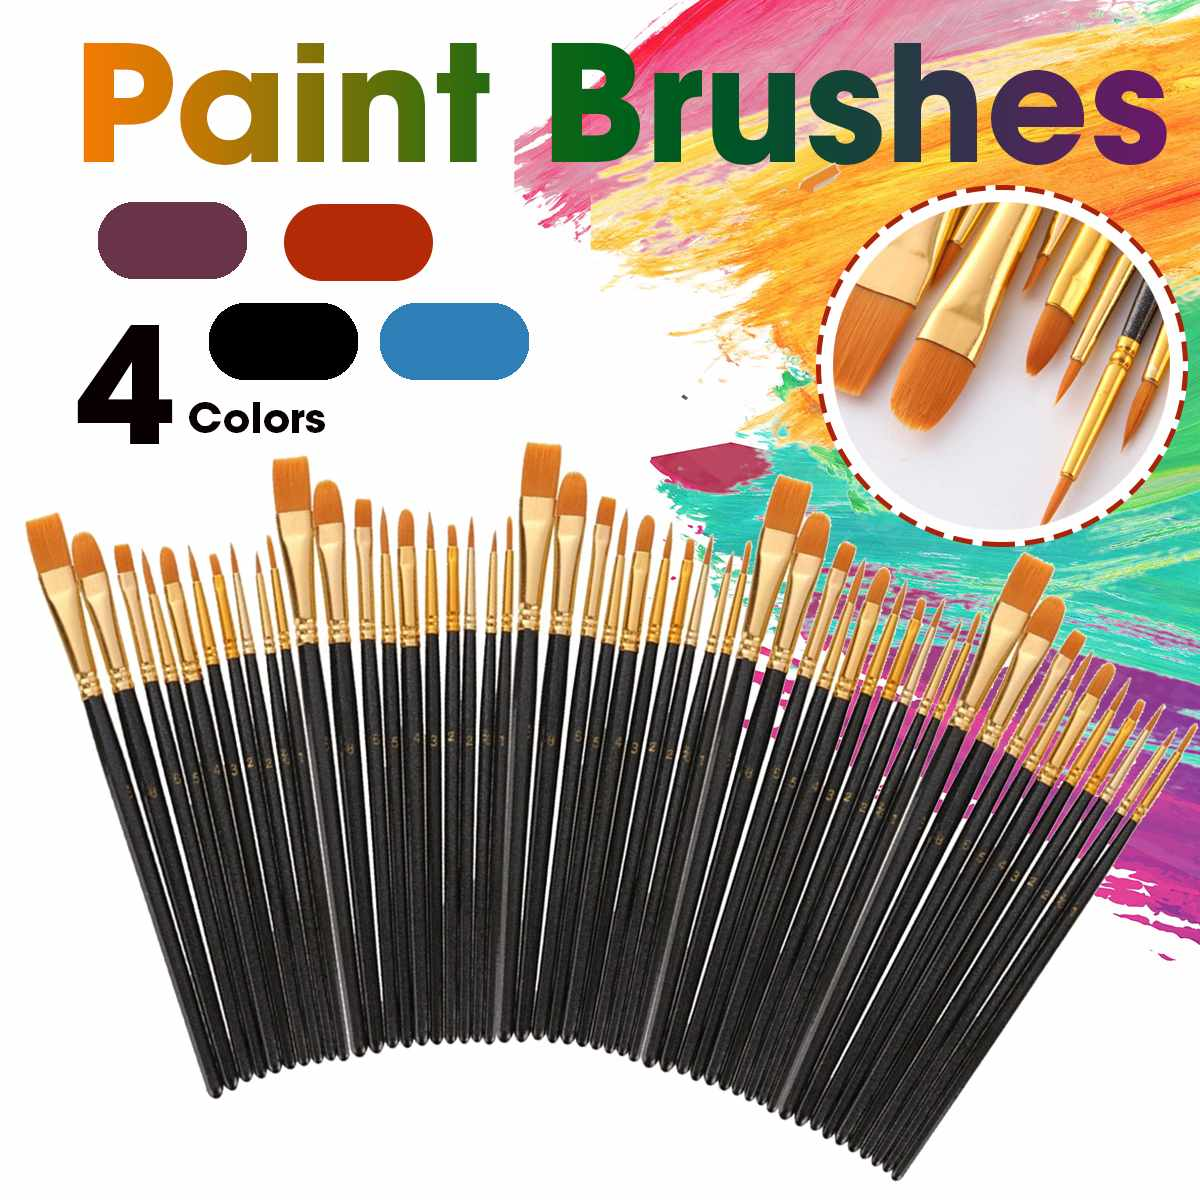 Nylon 50PCS Paint Brushes Wooden Handle Watercolor Paint Brush Pen Set Learning DIY Acrylic Painting Art Paint Brushes Supplies